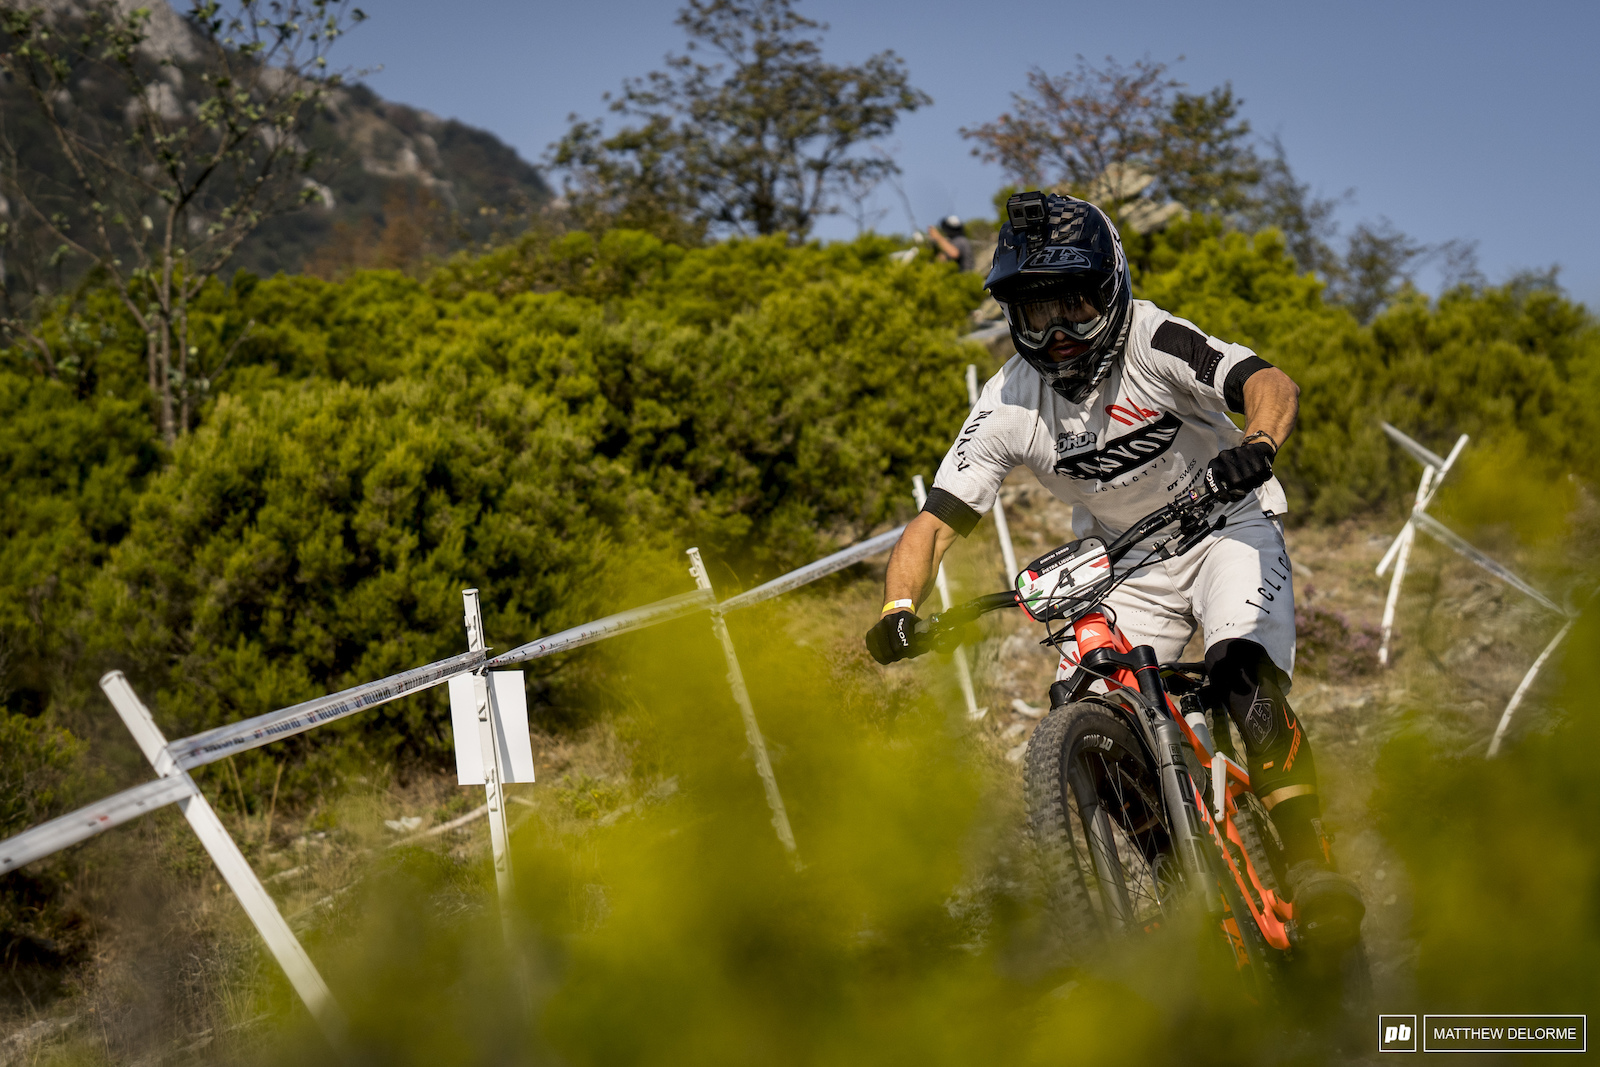 Will Dimitri Tordo pull off some amazing times on Sunday